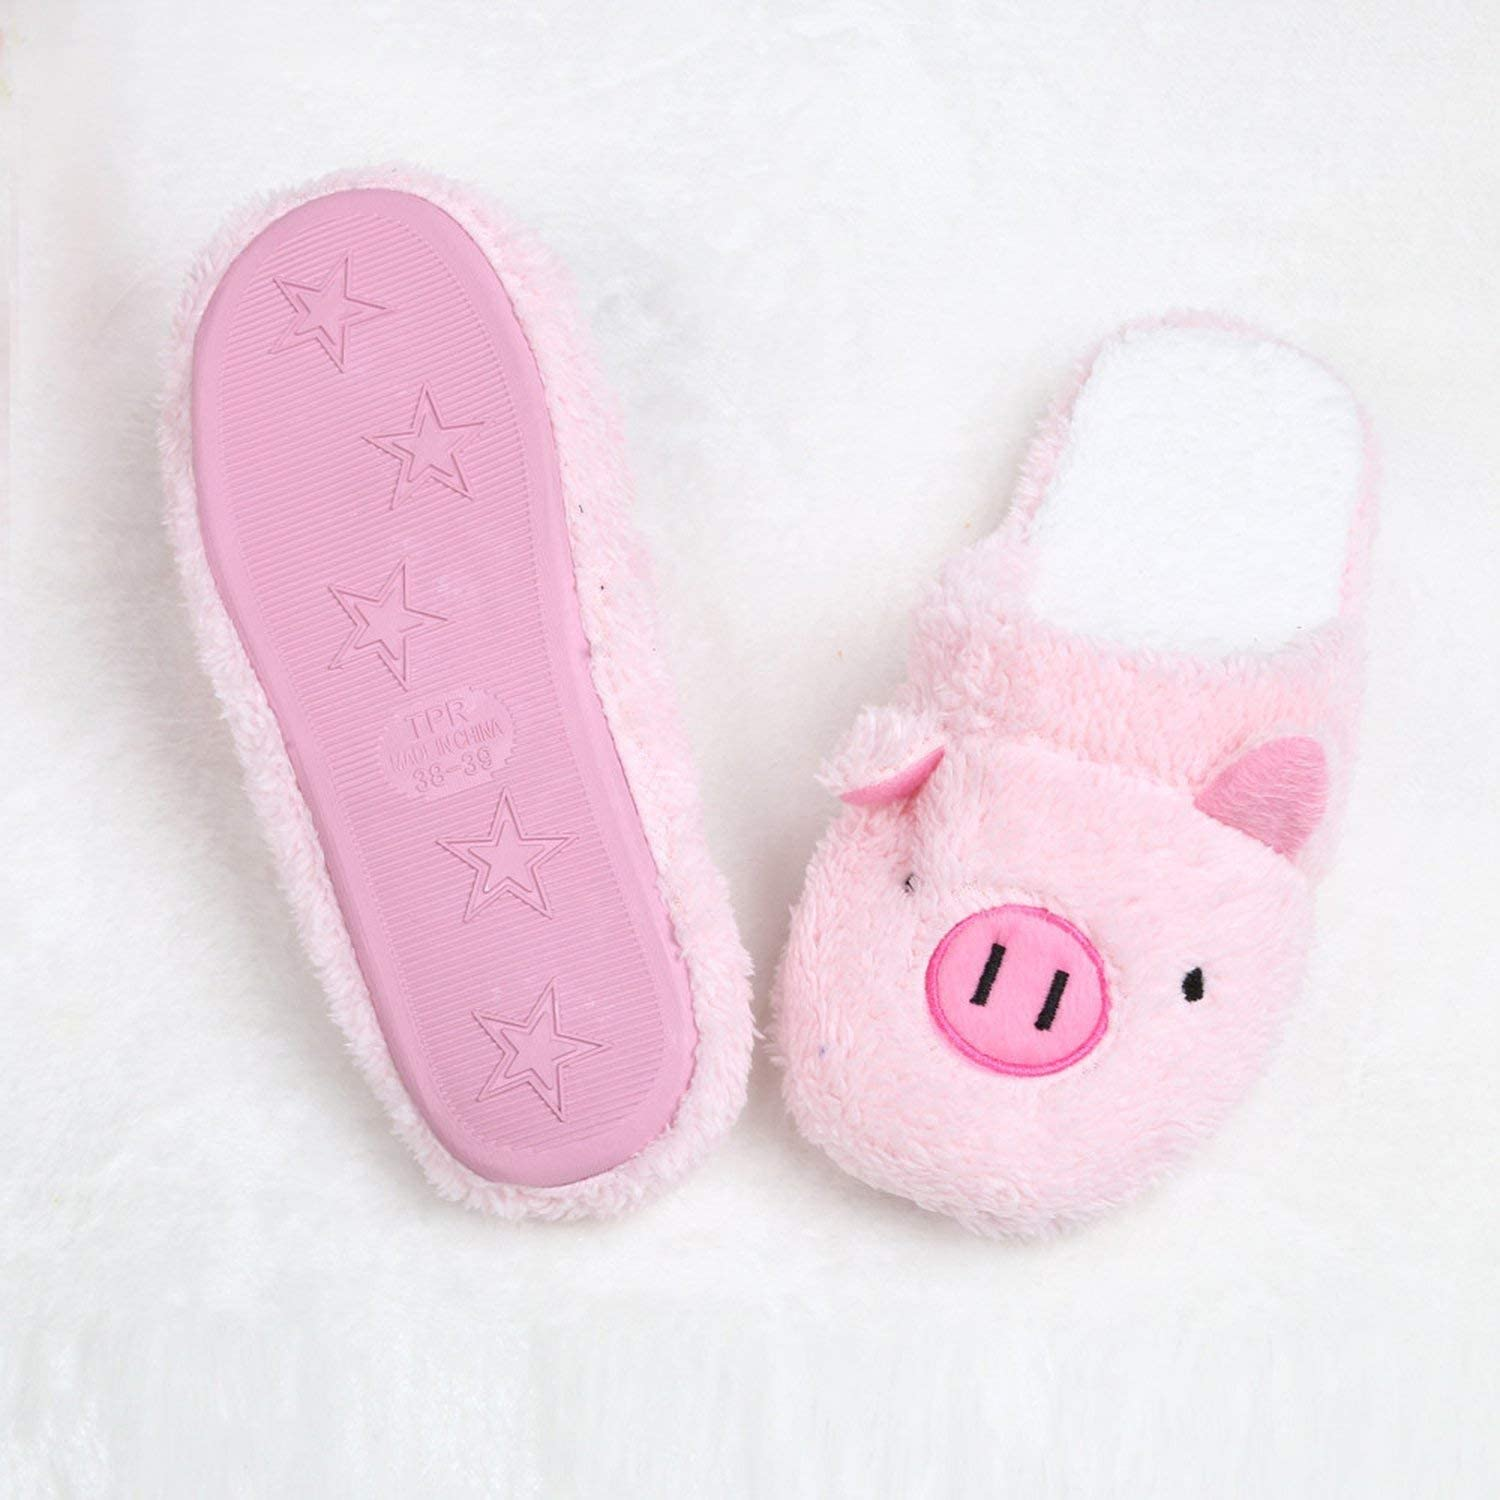 SATOSHI DUN Women Flip Flop Cute Pig Shape Home Floor Soft Stripe Slippers Winter Spring Warm Shoes,Pink,5.5,